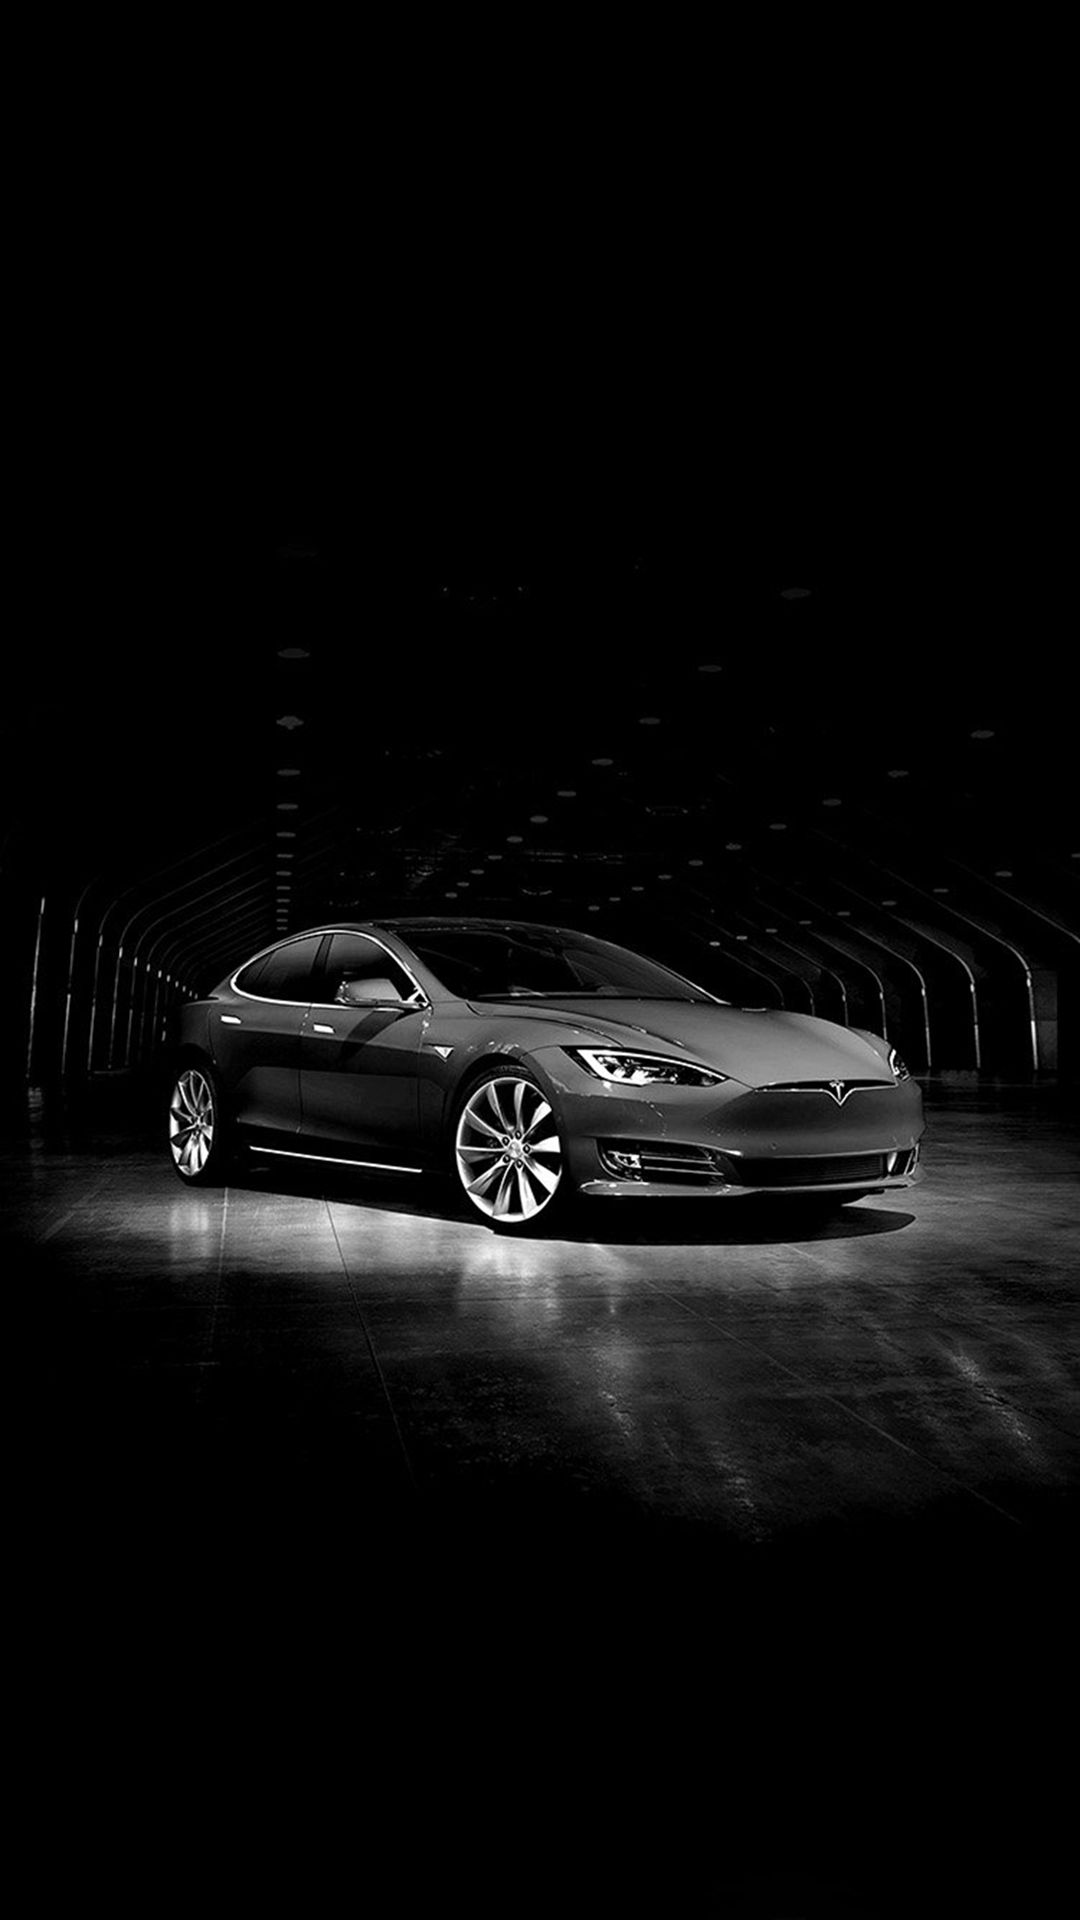 Tesla Model Concept Dark Bw Car iPhone 8 Wallpapers Car